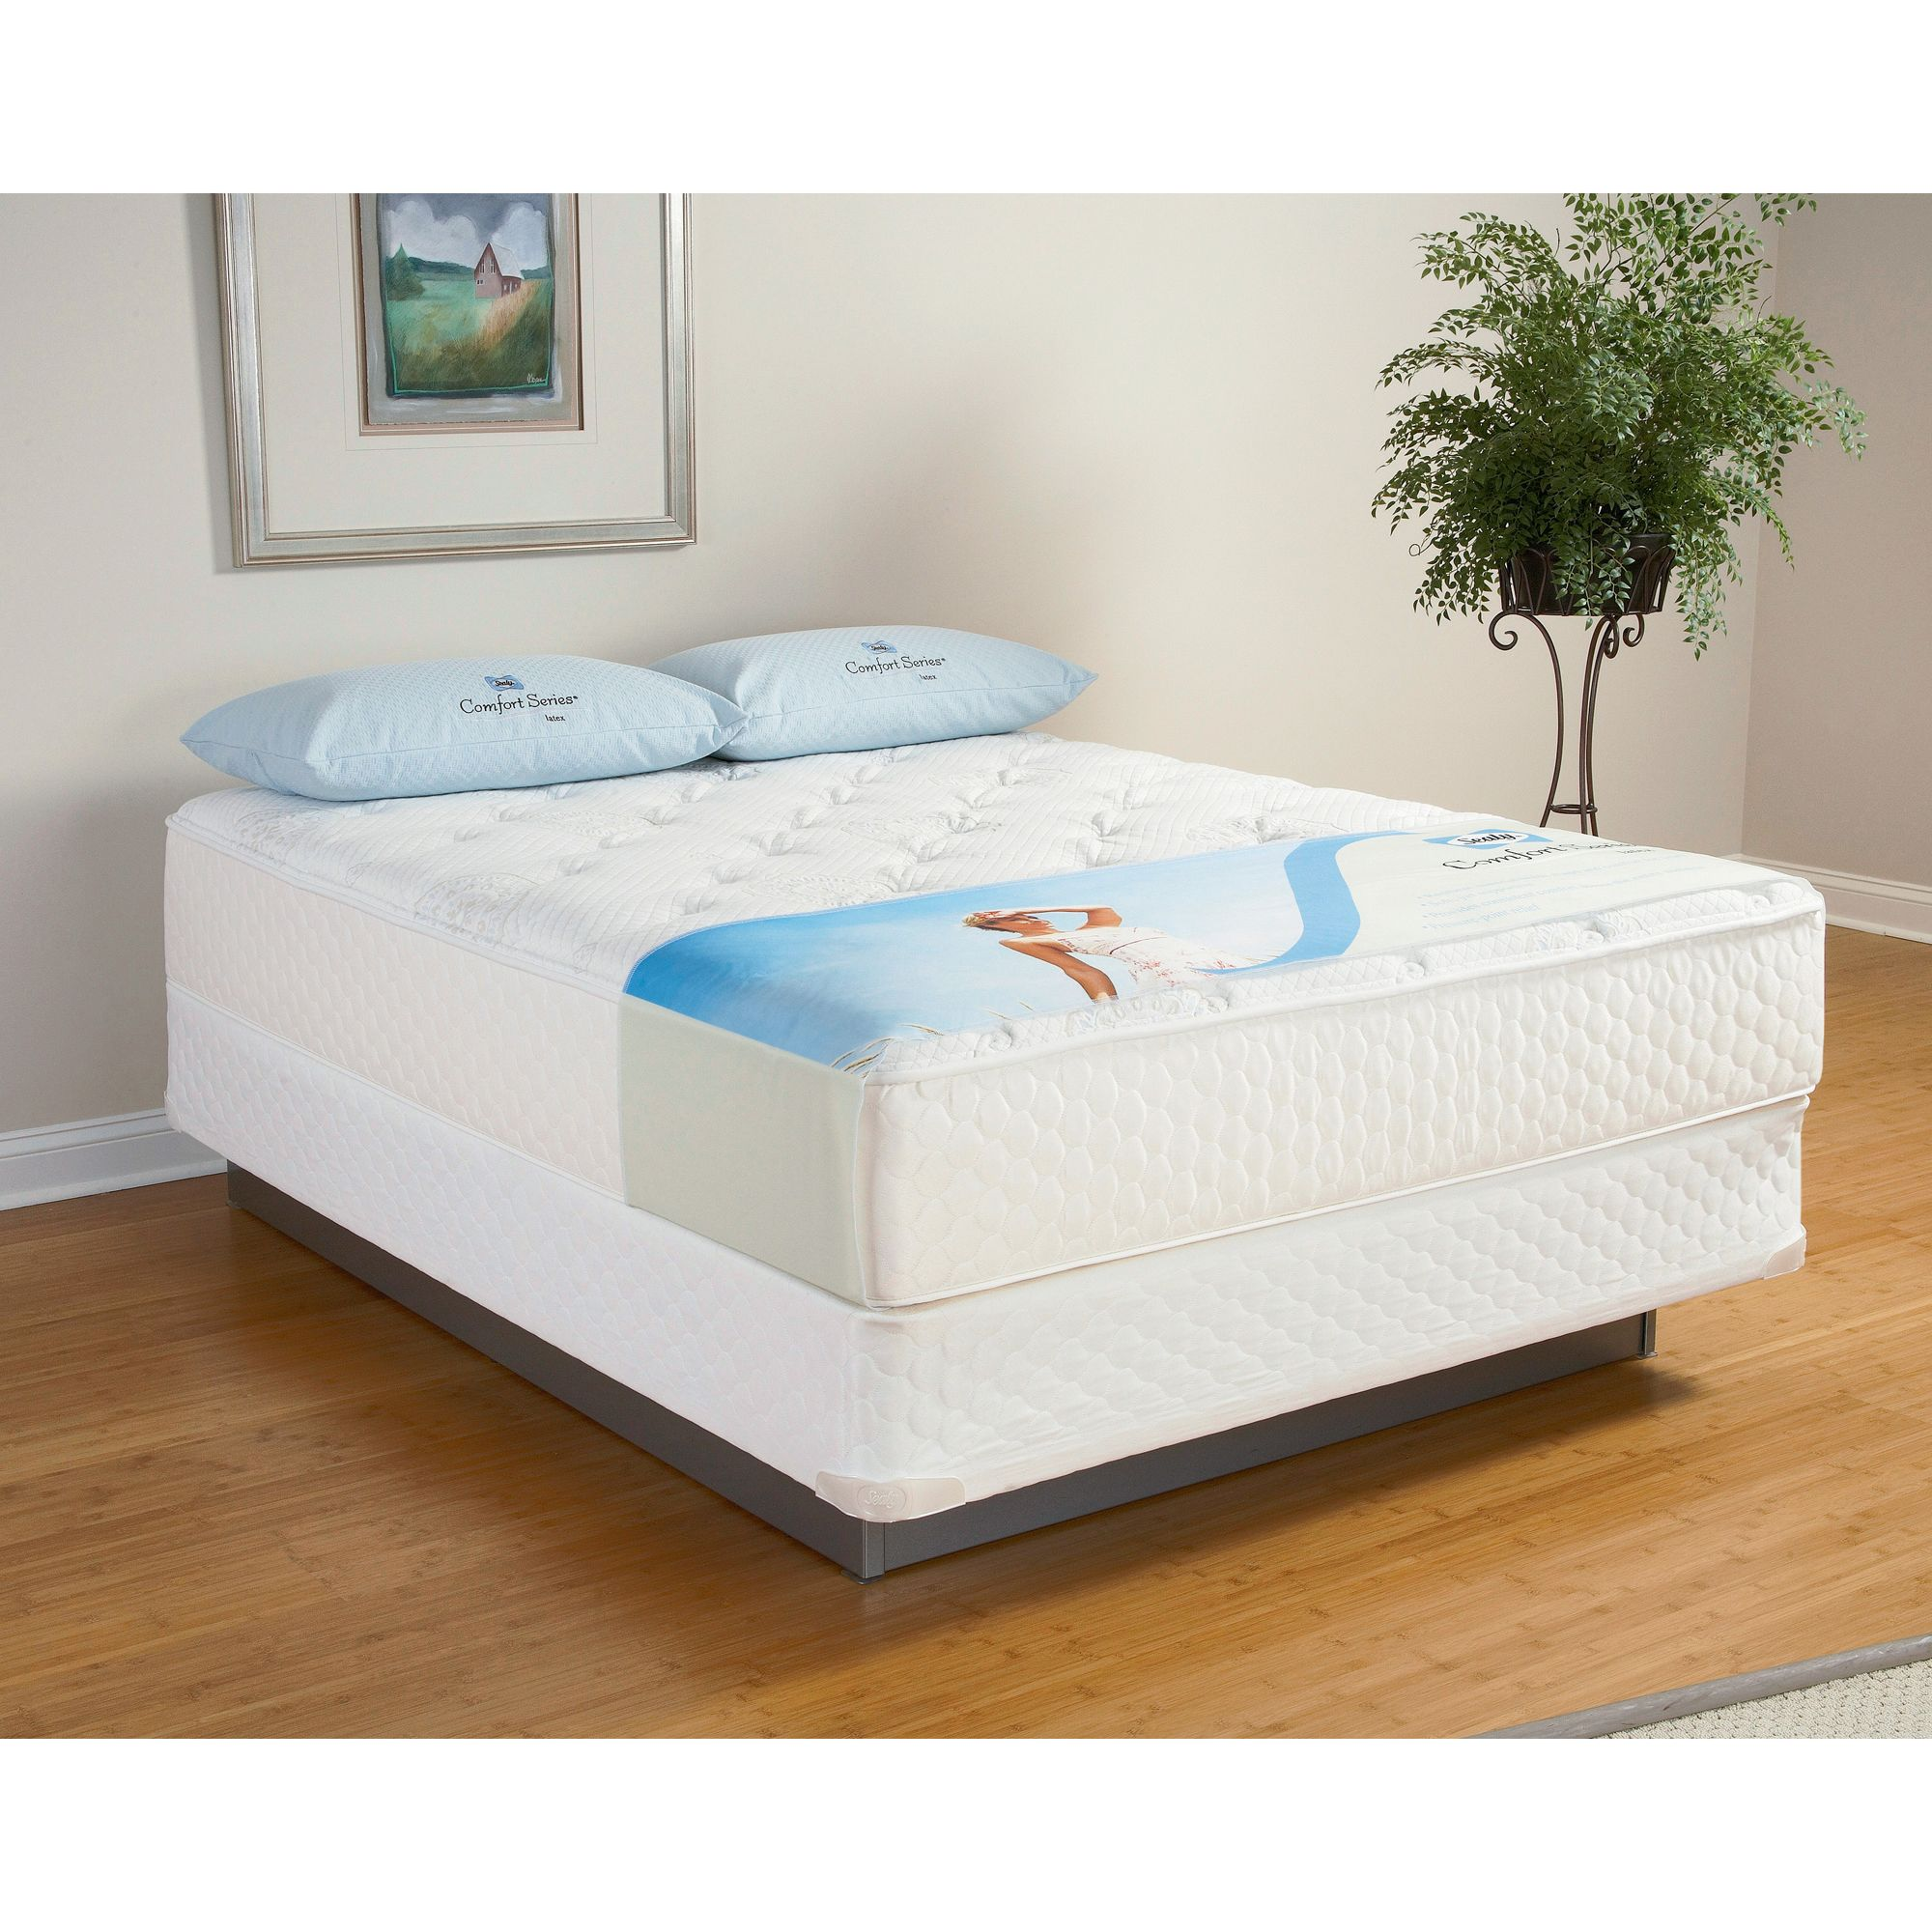 Tranquil-Sea-Plush-Latex-CA-King-Mattress